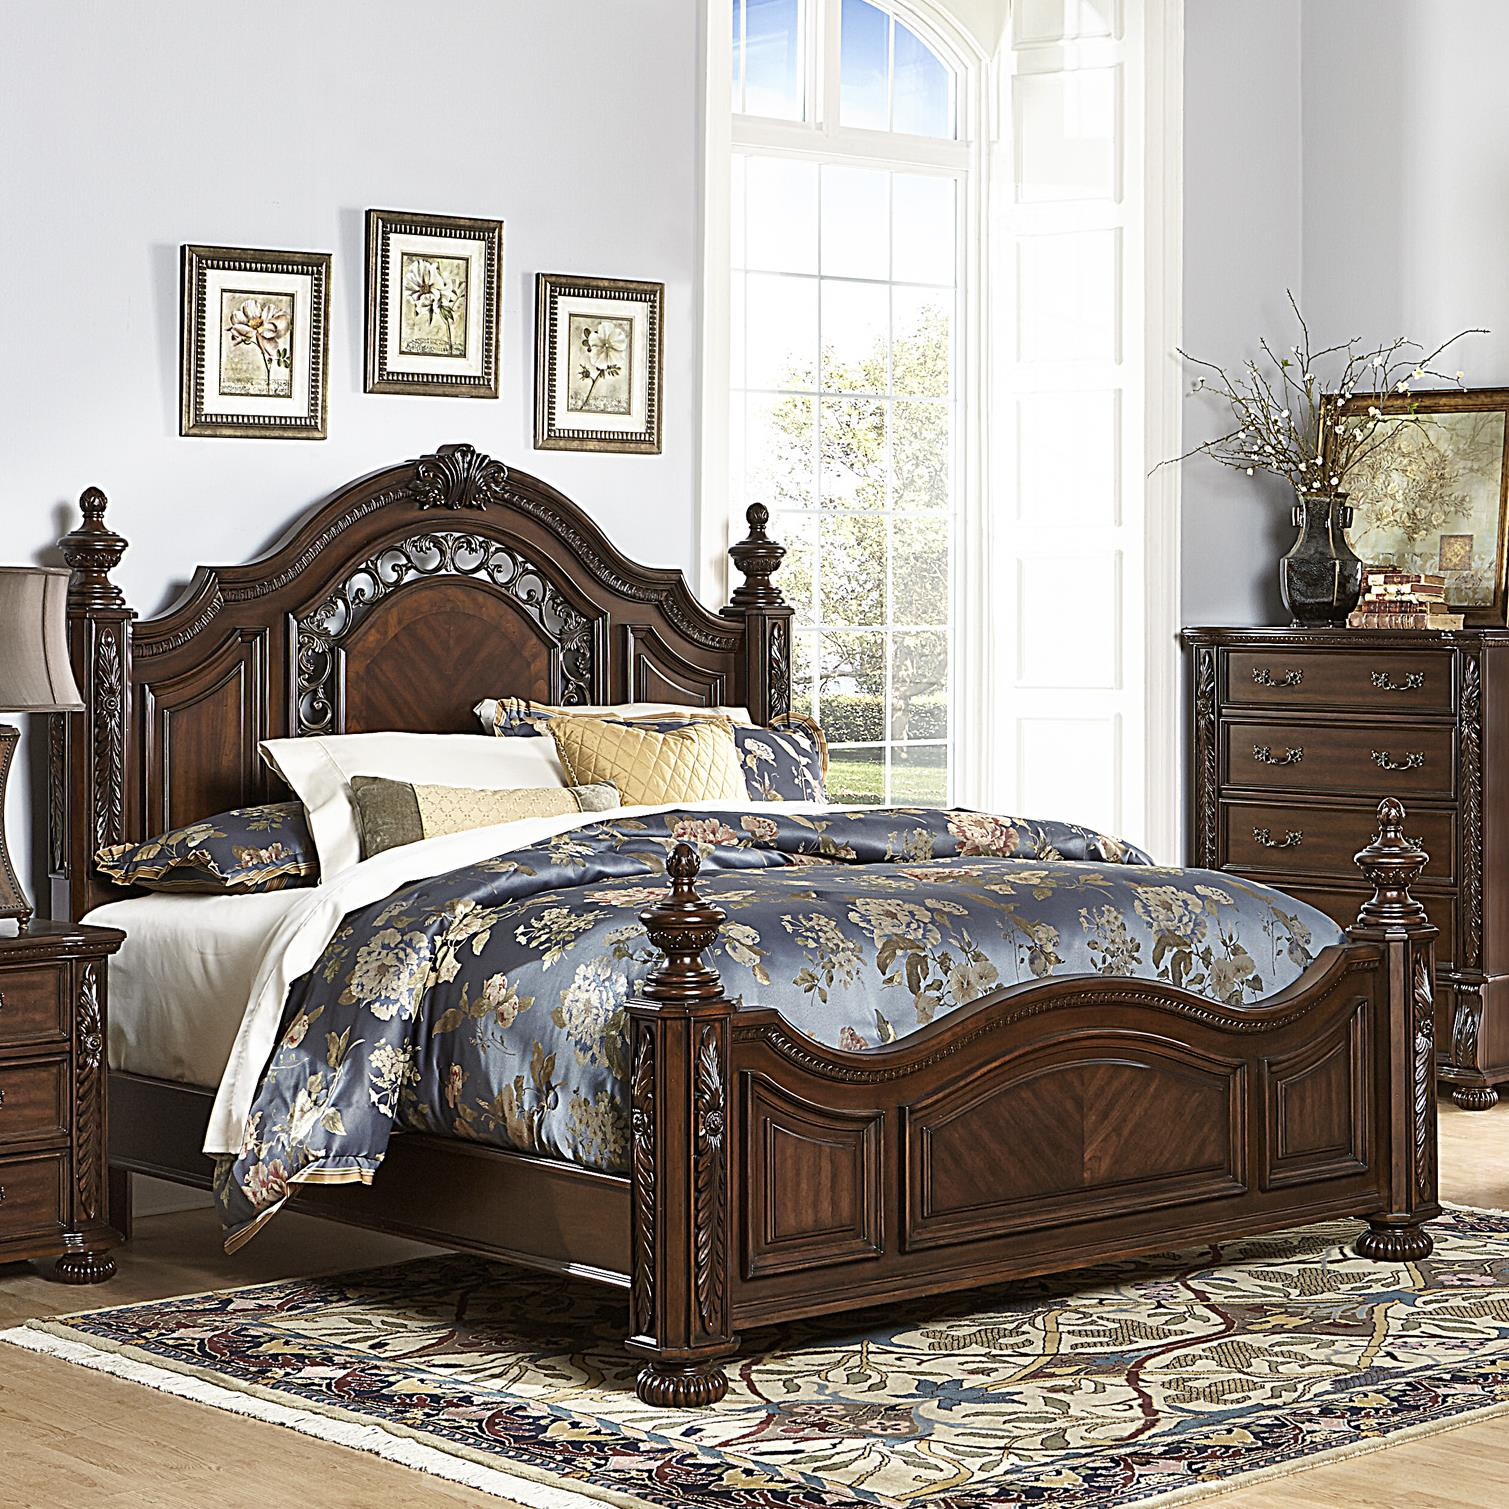 Homelegance Augustine Court King Bed - Item Number: 1814K-1+3EK+P